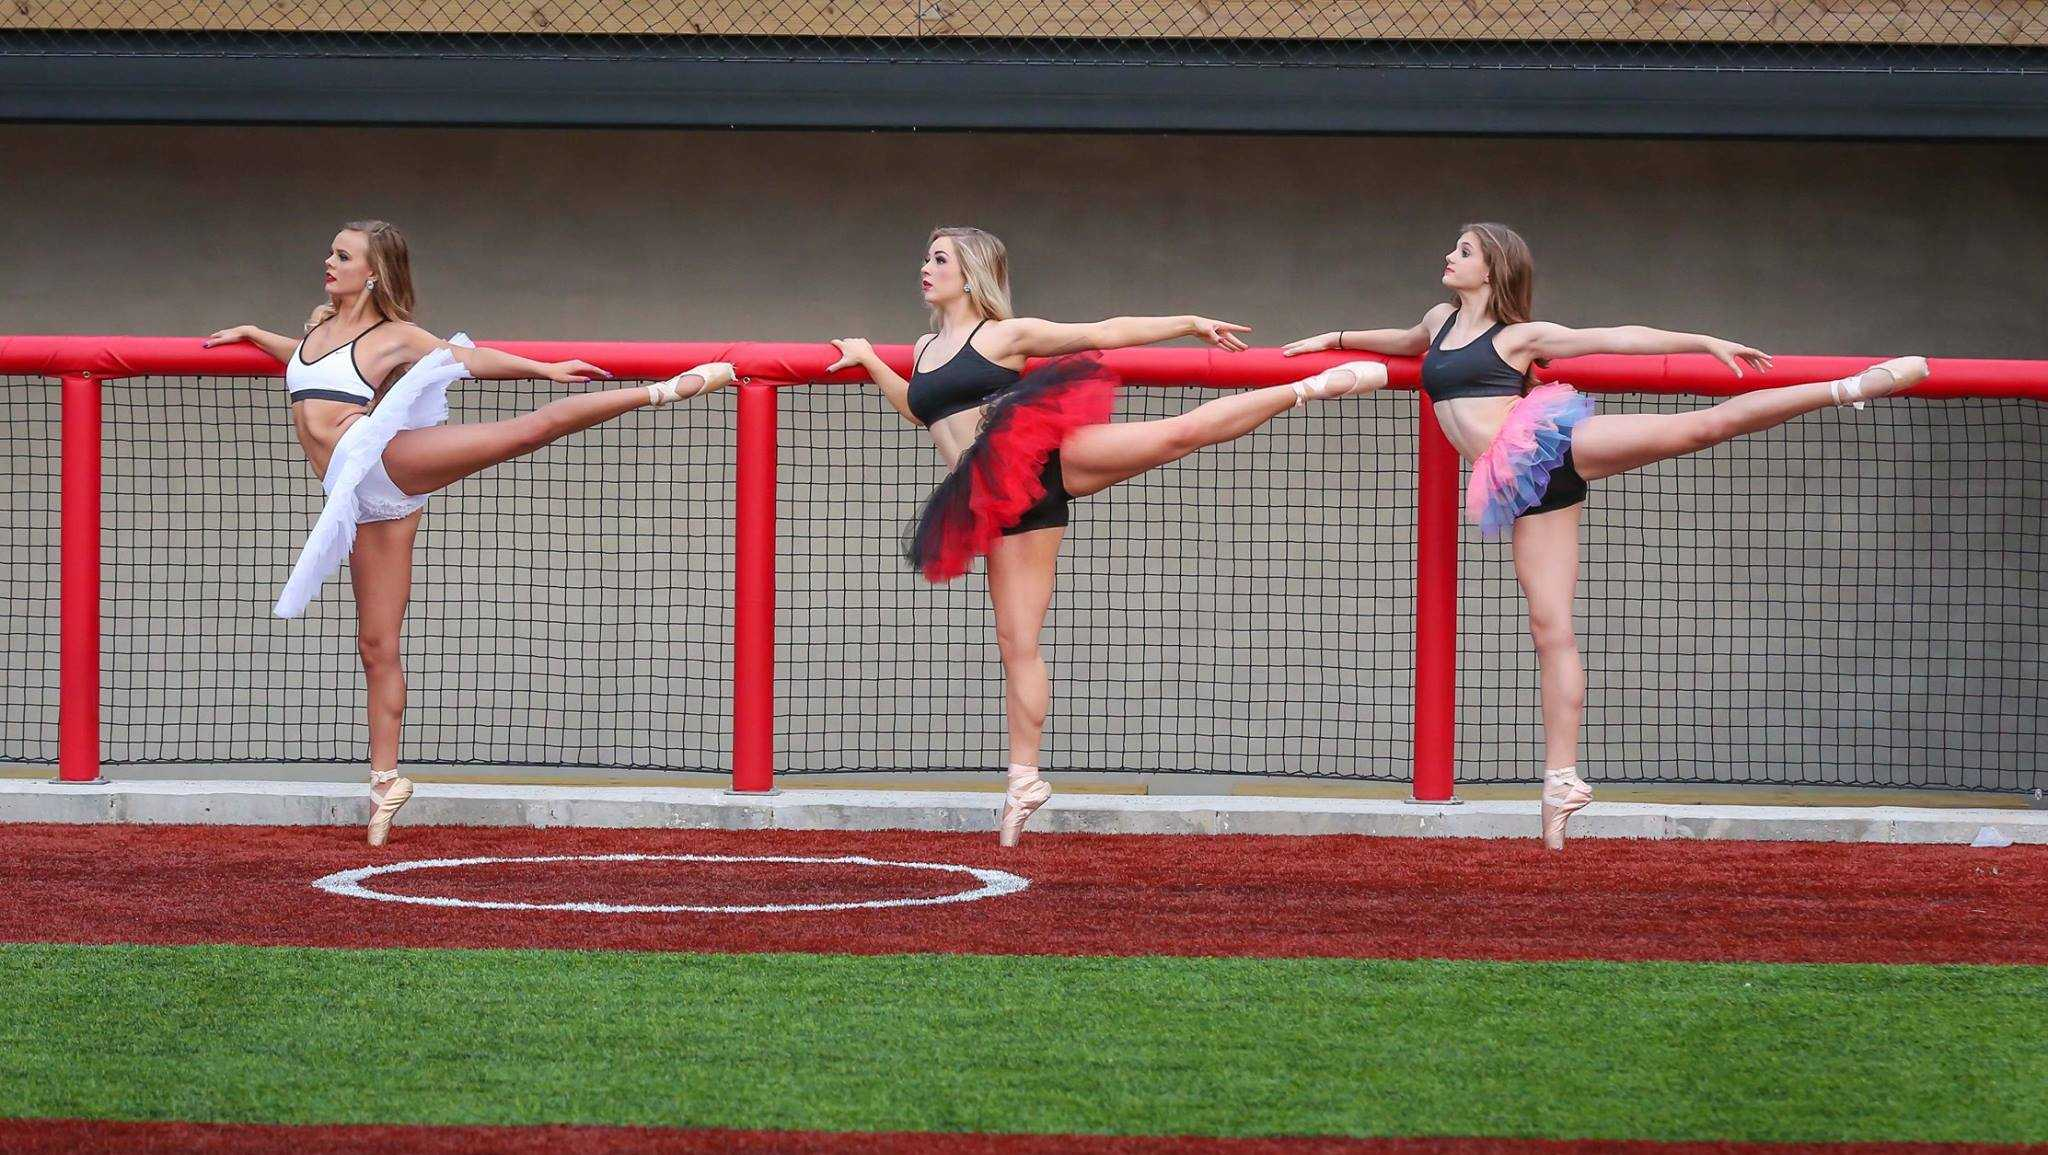 Ballet, Baseball photo shoot